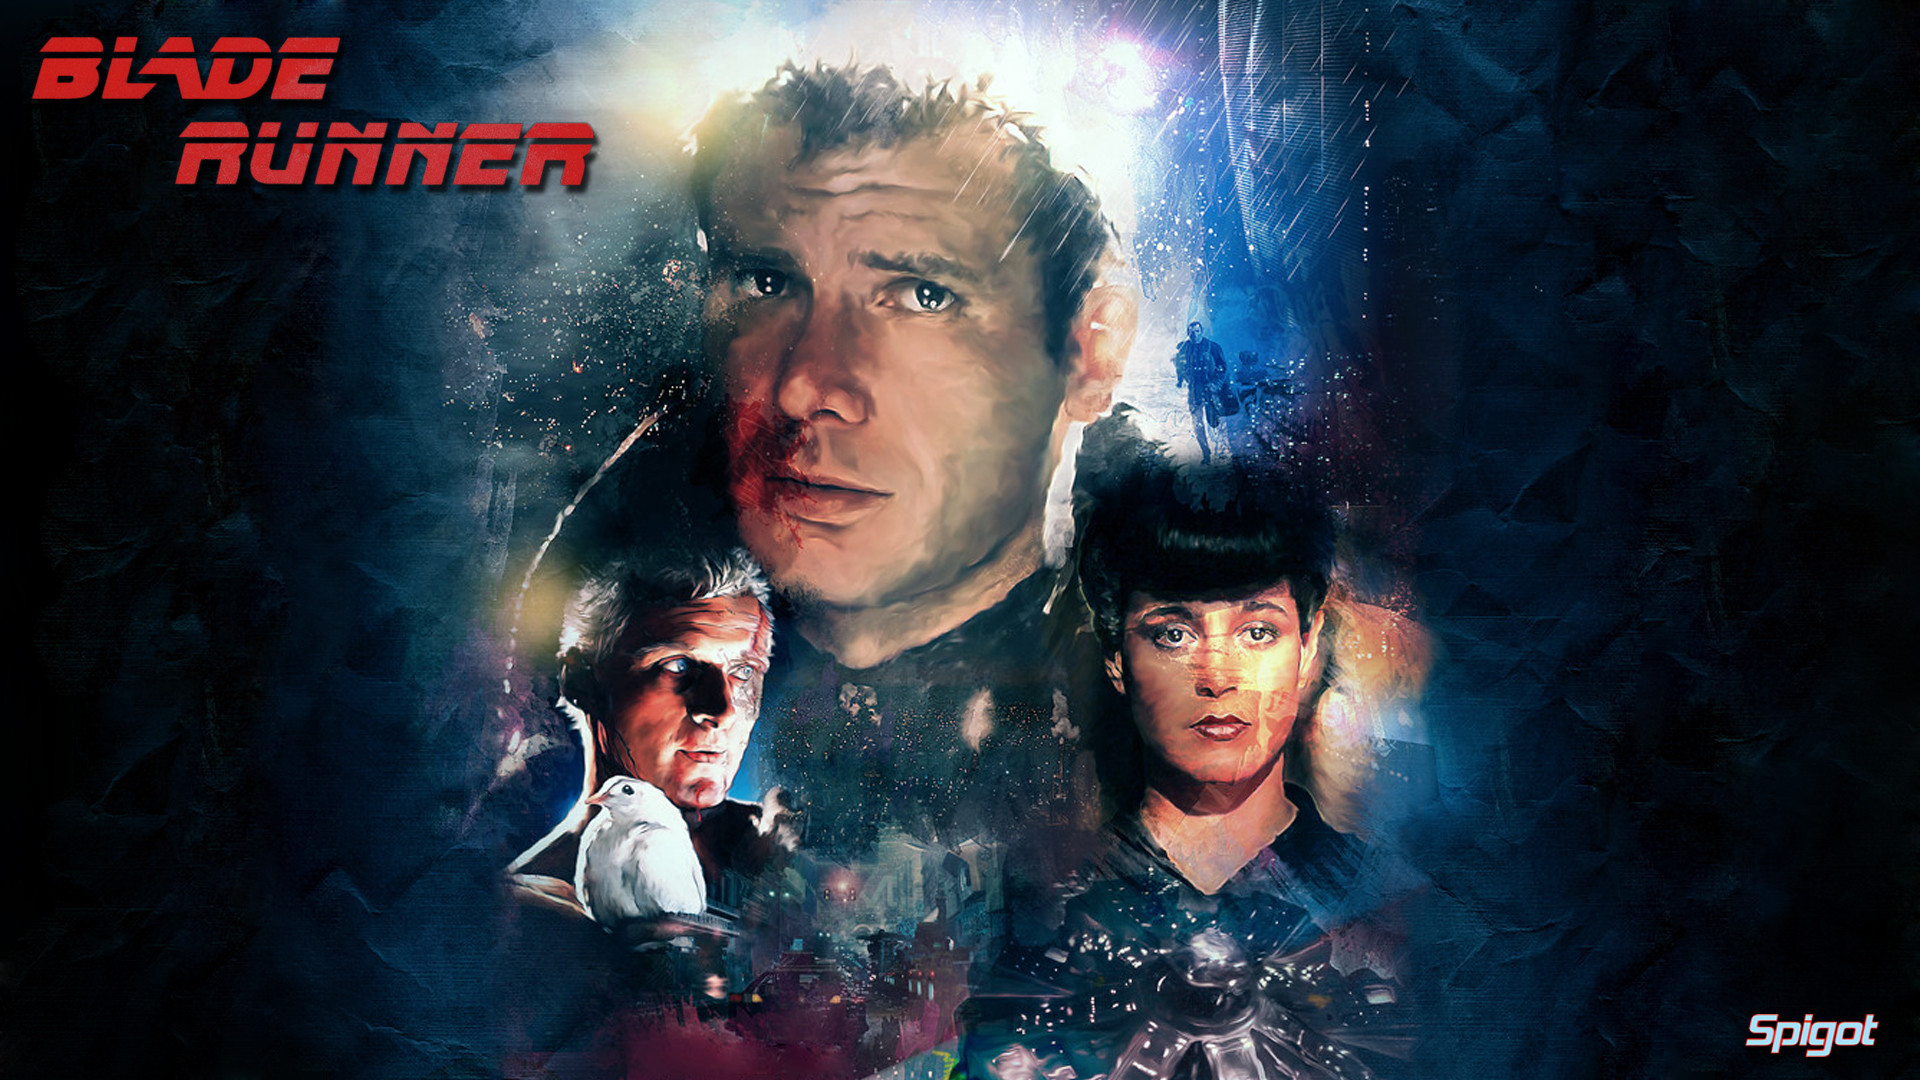 a review of the final scenes of blade runner the fallen angel A review of blade runner 2049 k kills luv in a final confrontation that is all about a series of monuments to fallen gods and k is highly distressed by.